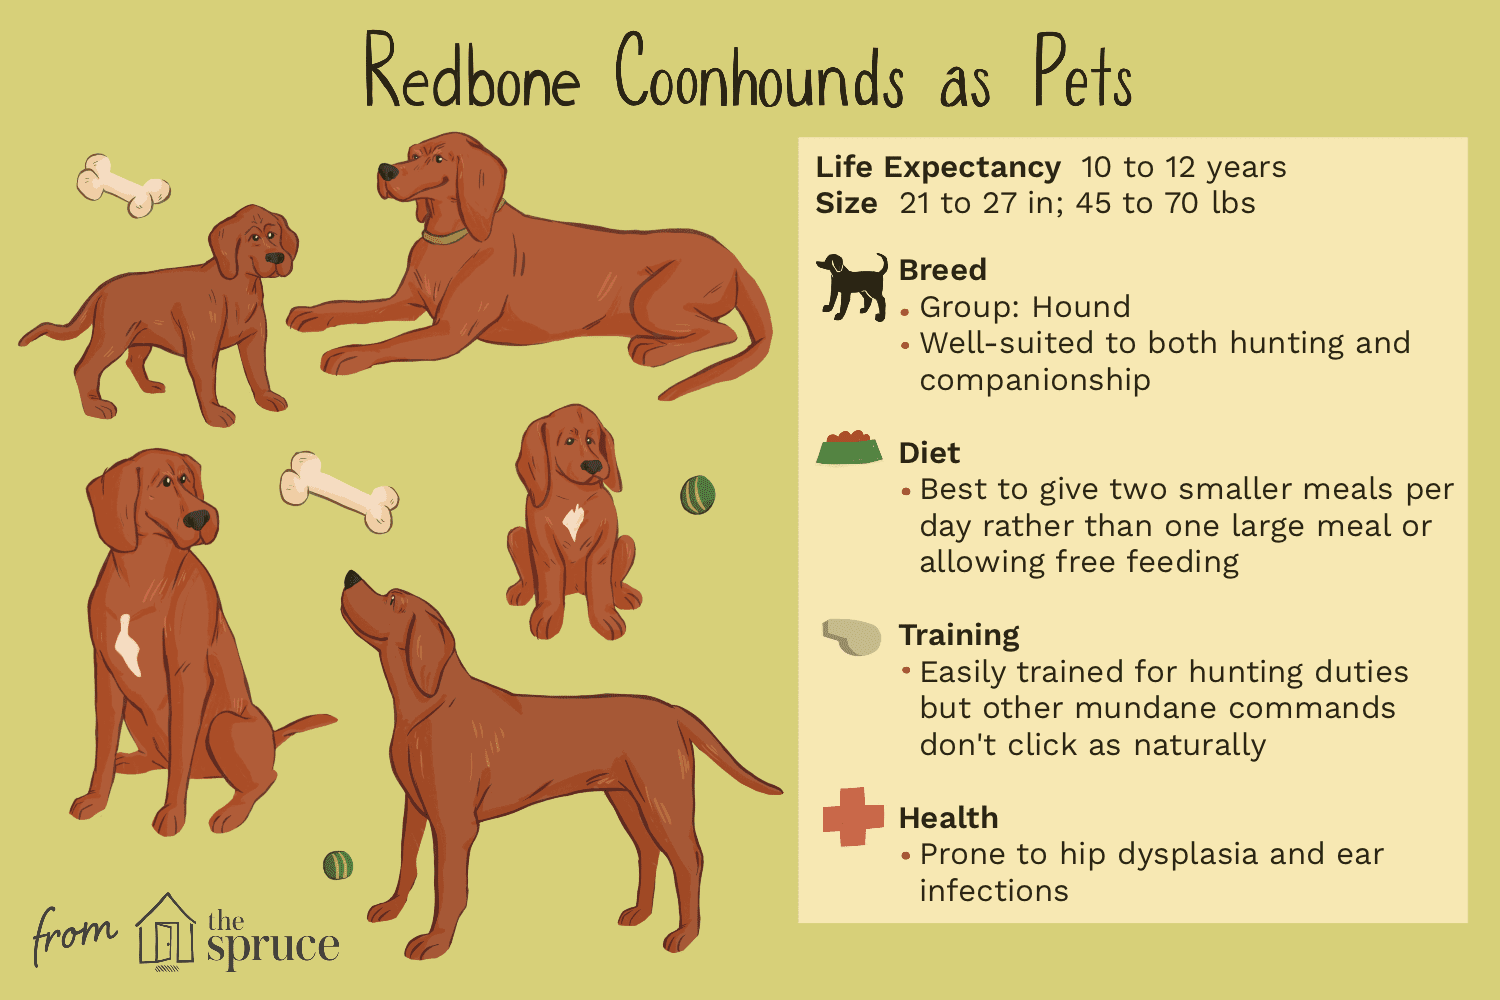 redbone coonhounds as pets illustration